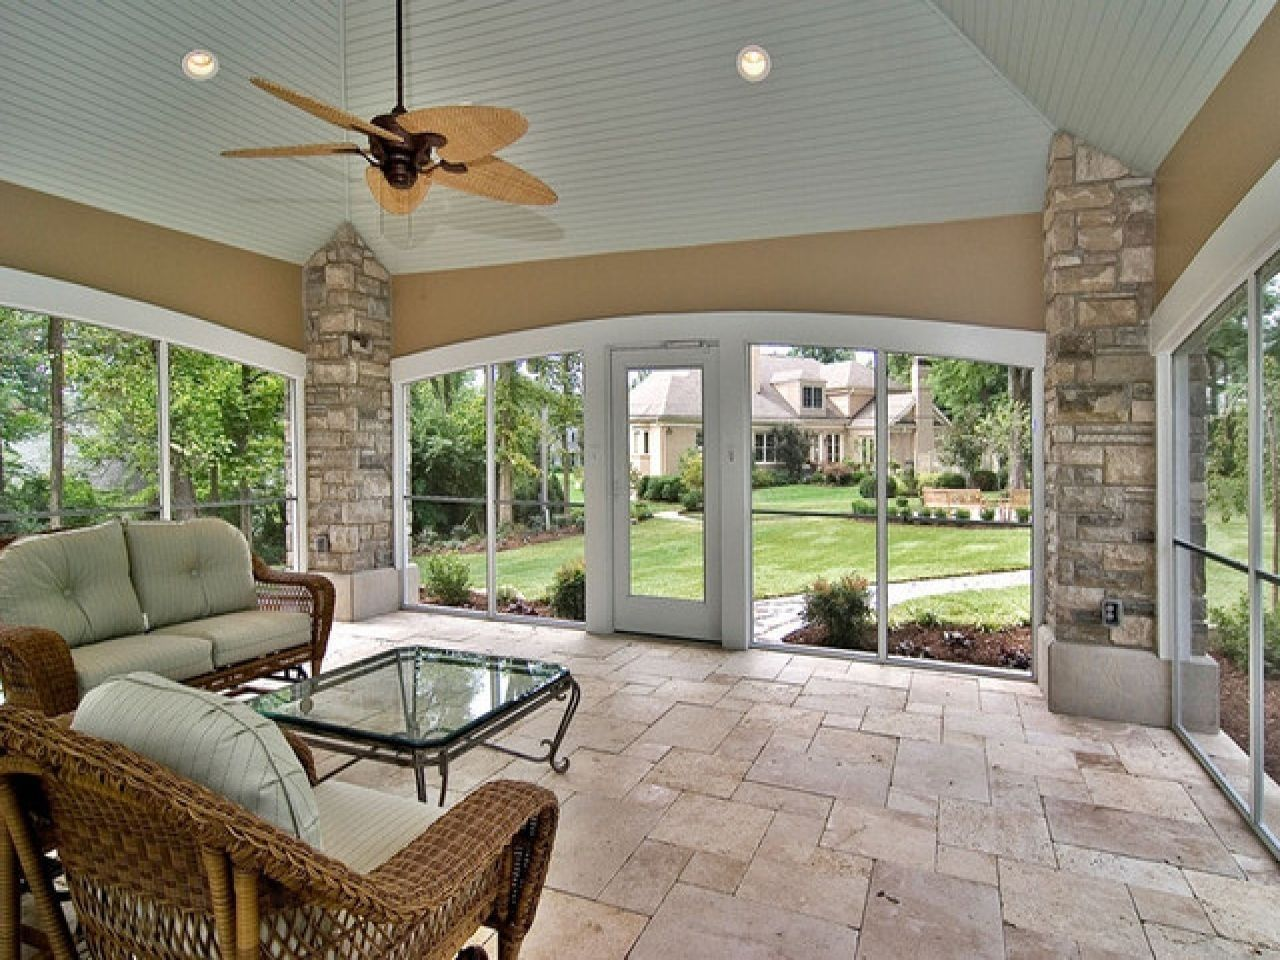 A simple guide to backyard enclosed patio ideas bw06zu